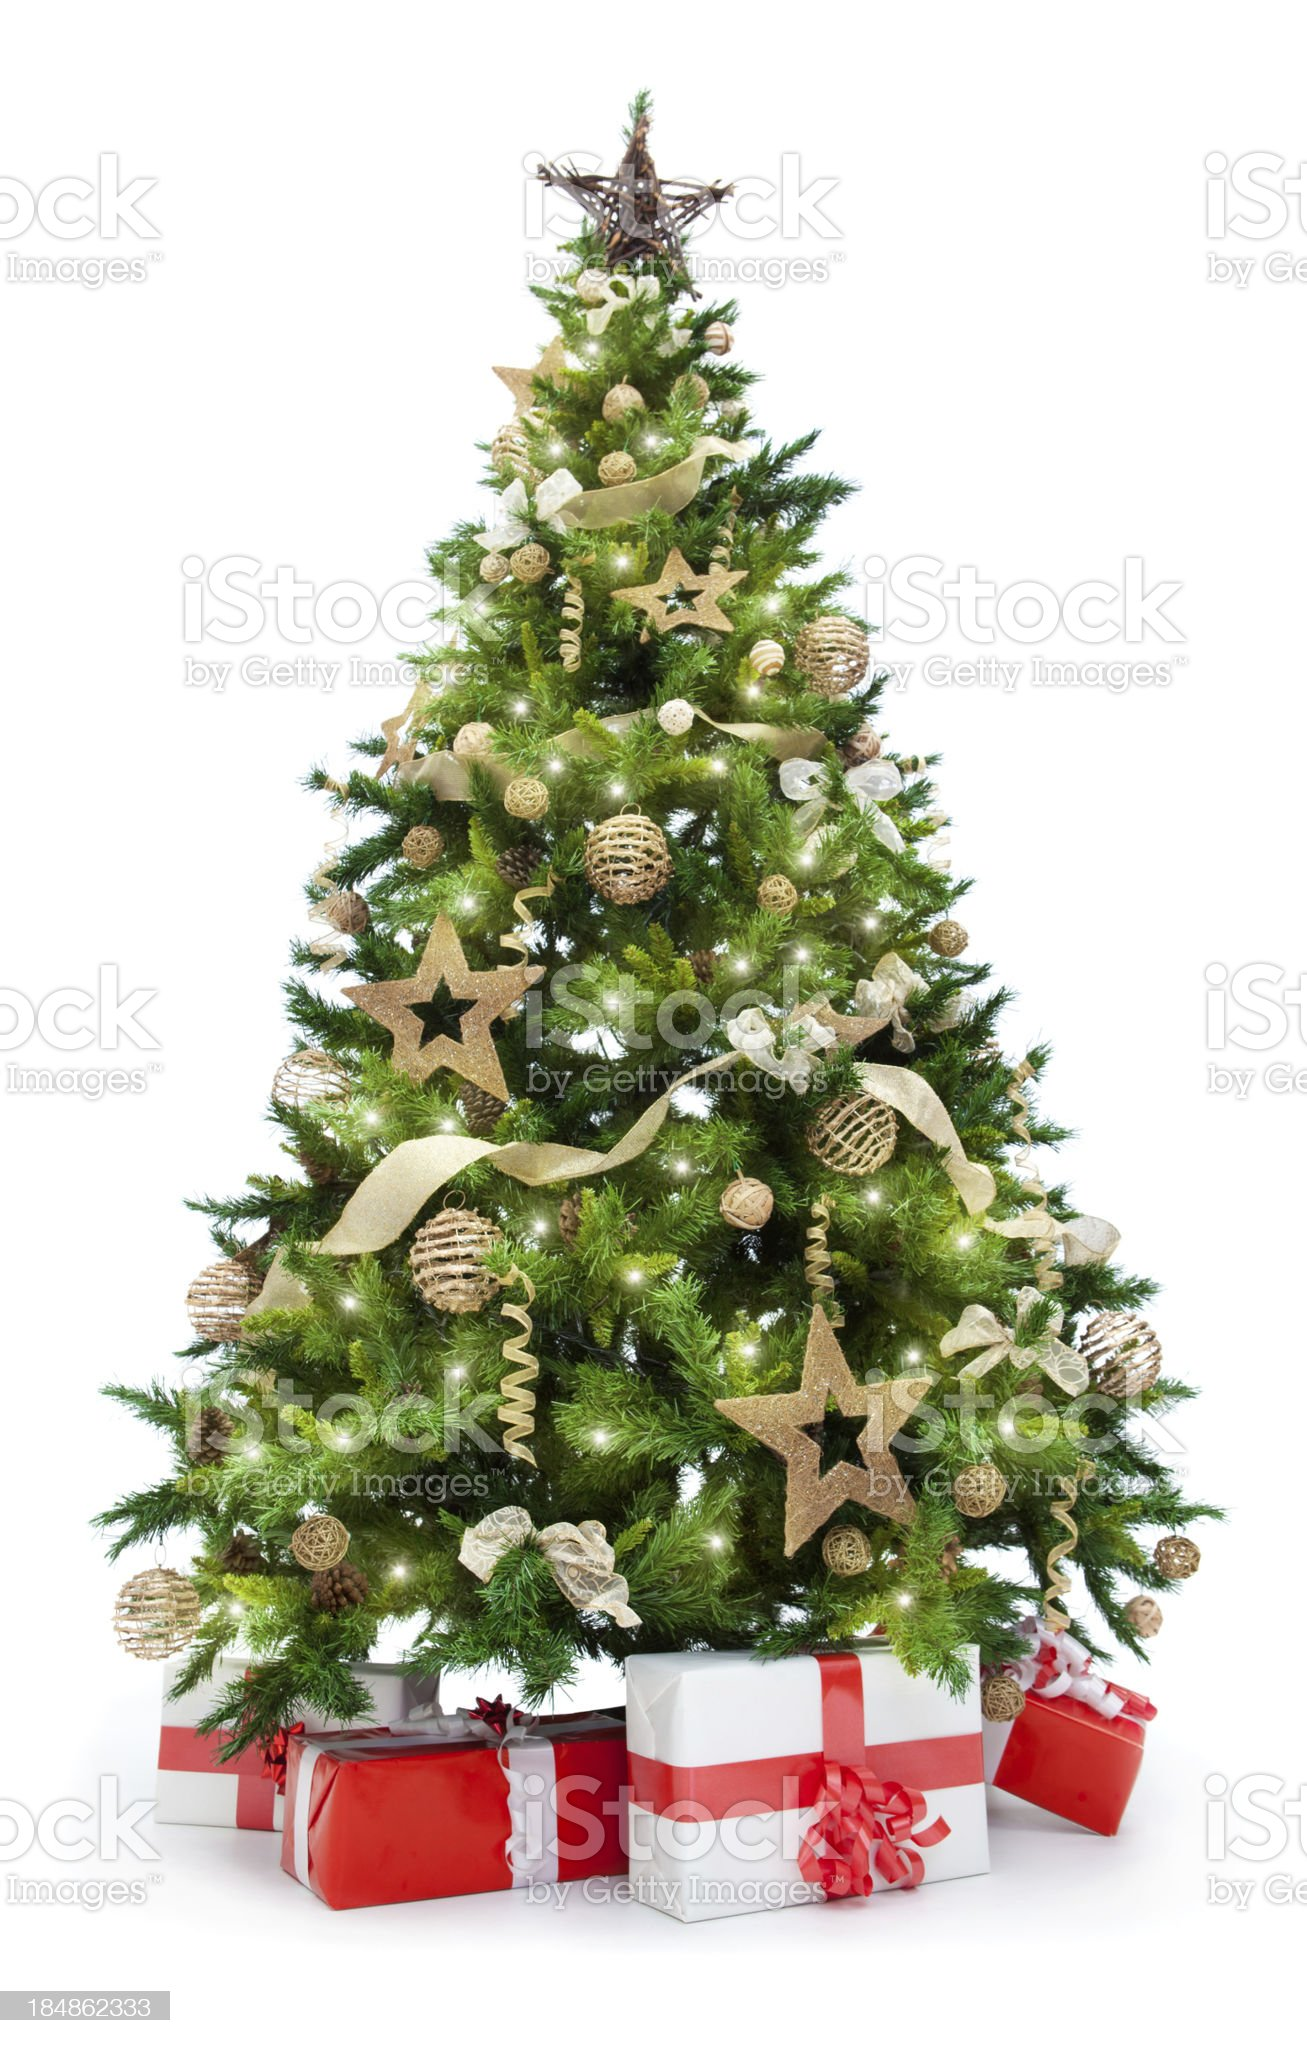 christmas tree with lights and gifts isolated on white royalty-free stock photo